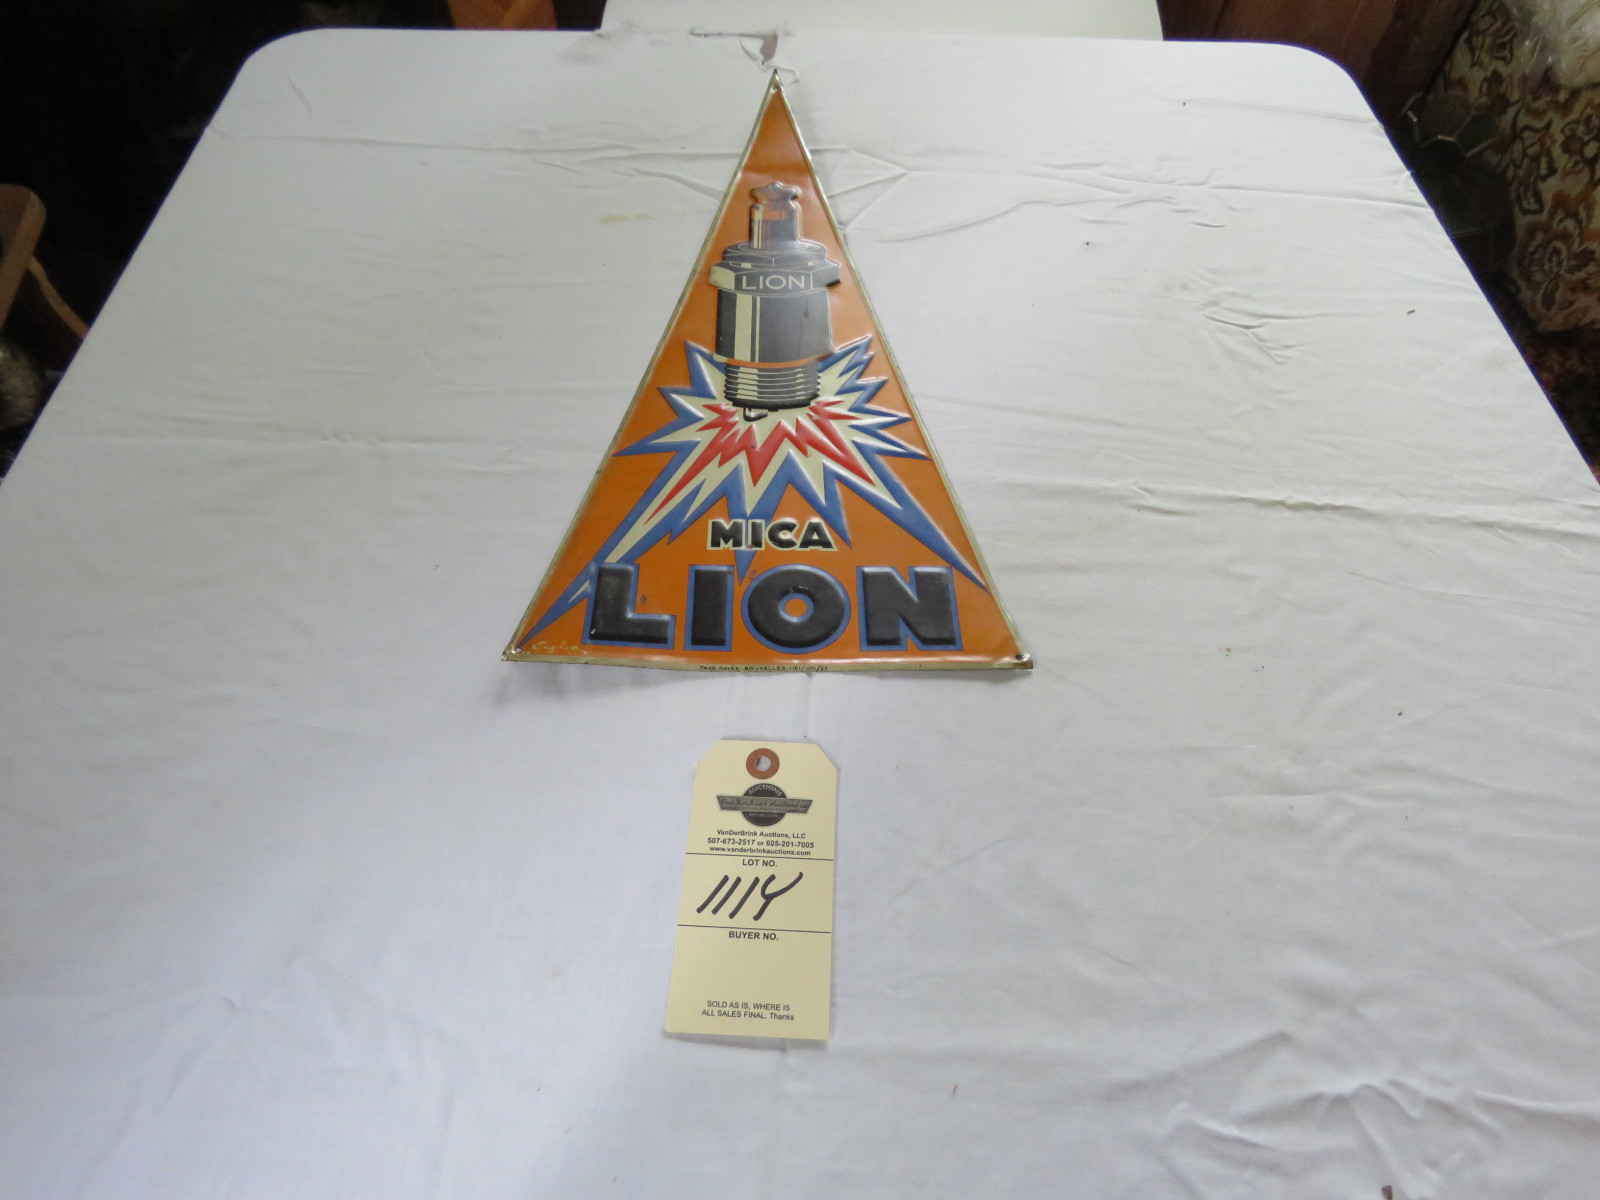 MICA Lion Vintage Pzainted Tin Advetising - Image 1